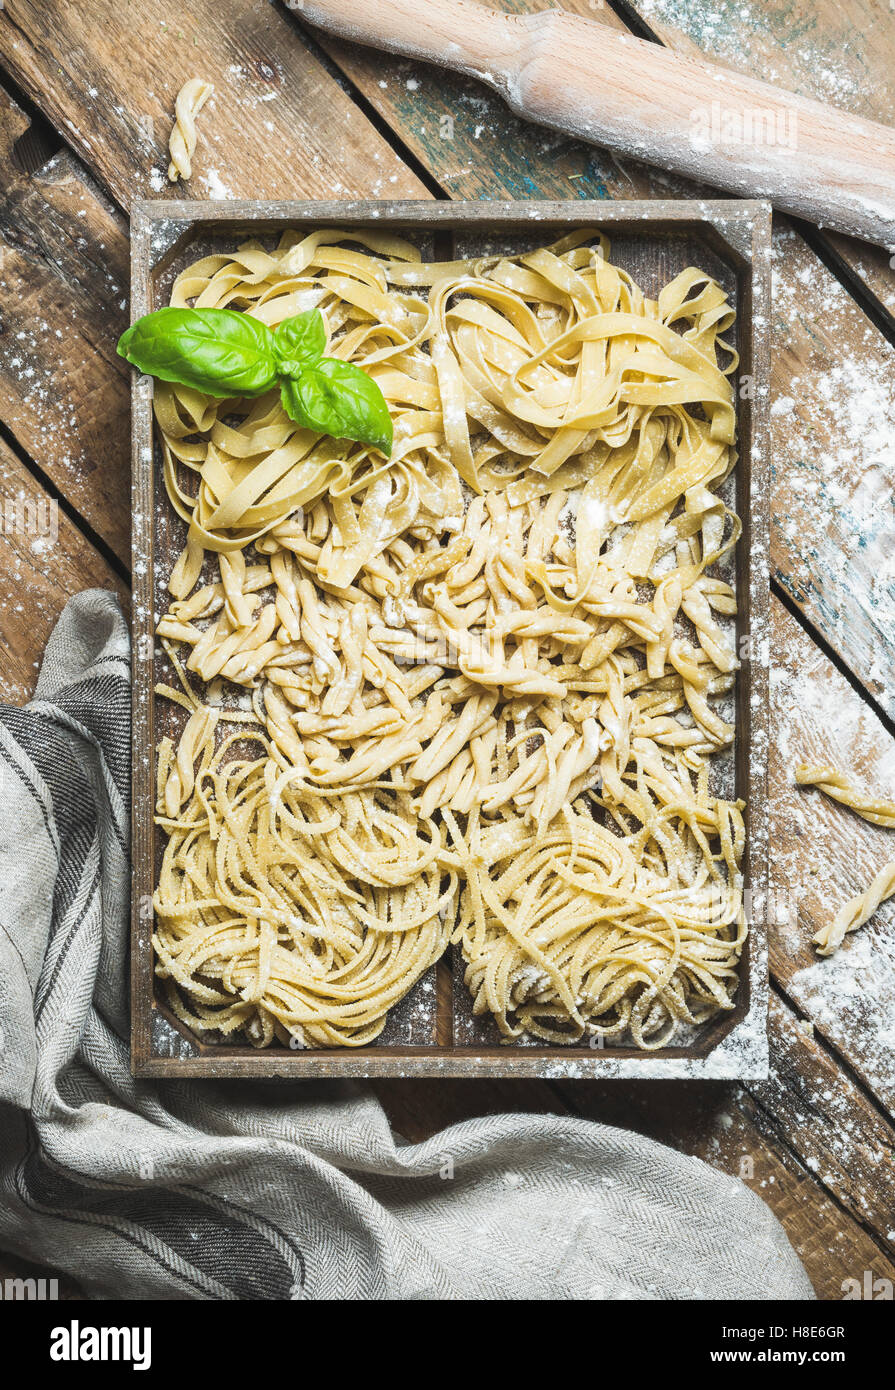 Various homemade fresh uncooked Italian pasta with flour and green basil leaves in wooden tray over shabby background, - Stock Image